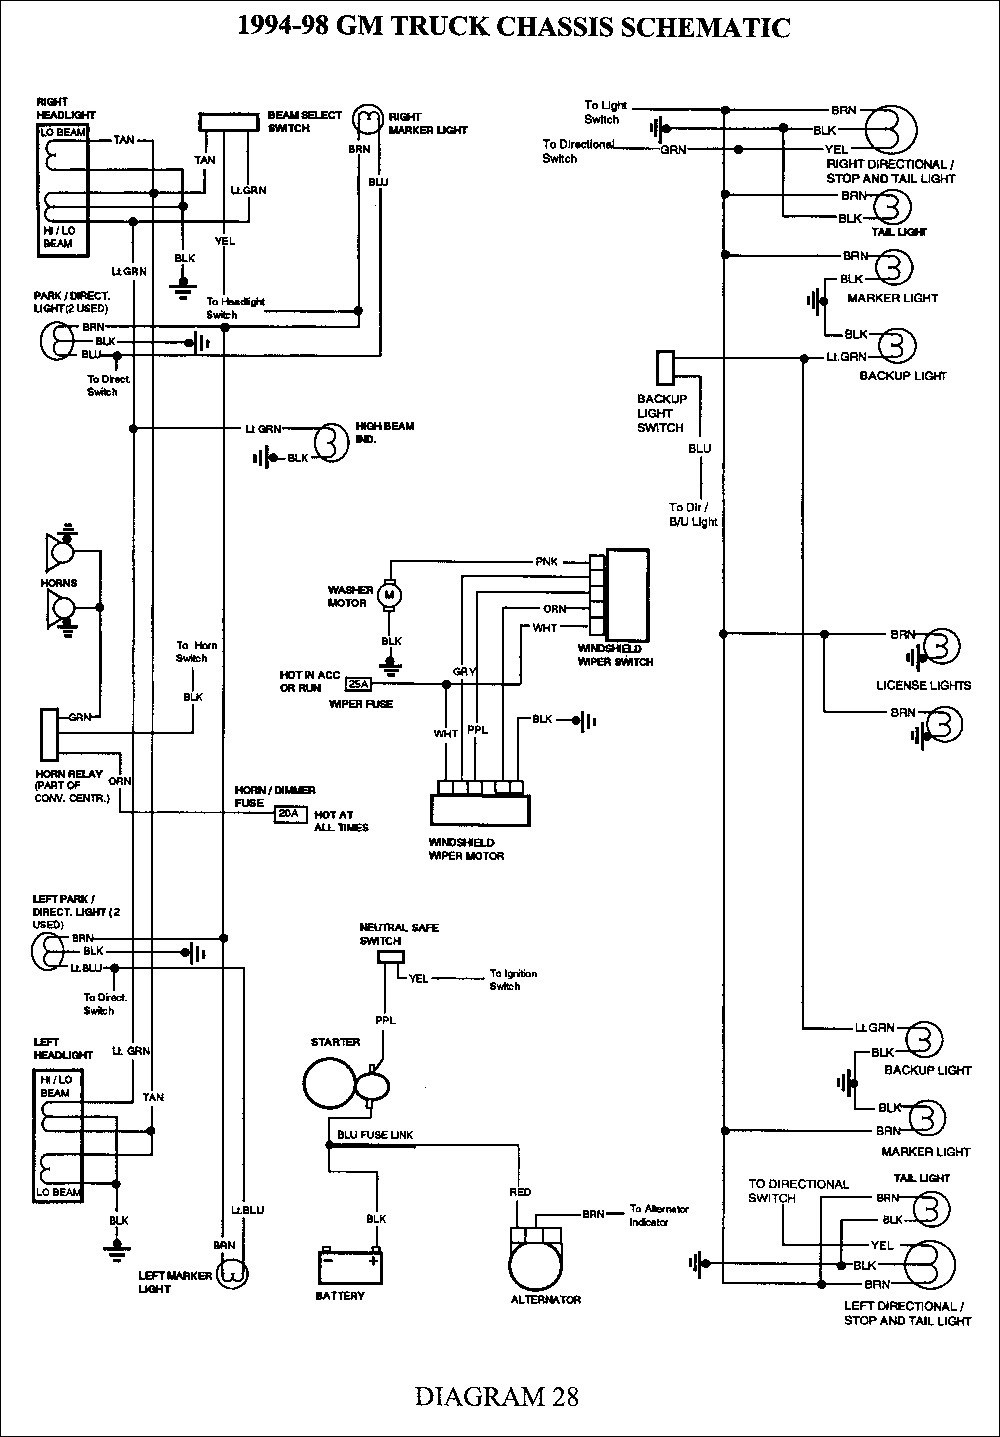 Electrical Wiring Diagrams Inspirational 2001 Chevy Truck Wiring Diagram  Wiring Harness Database